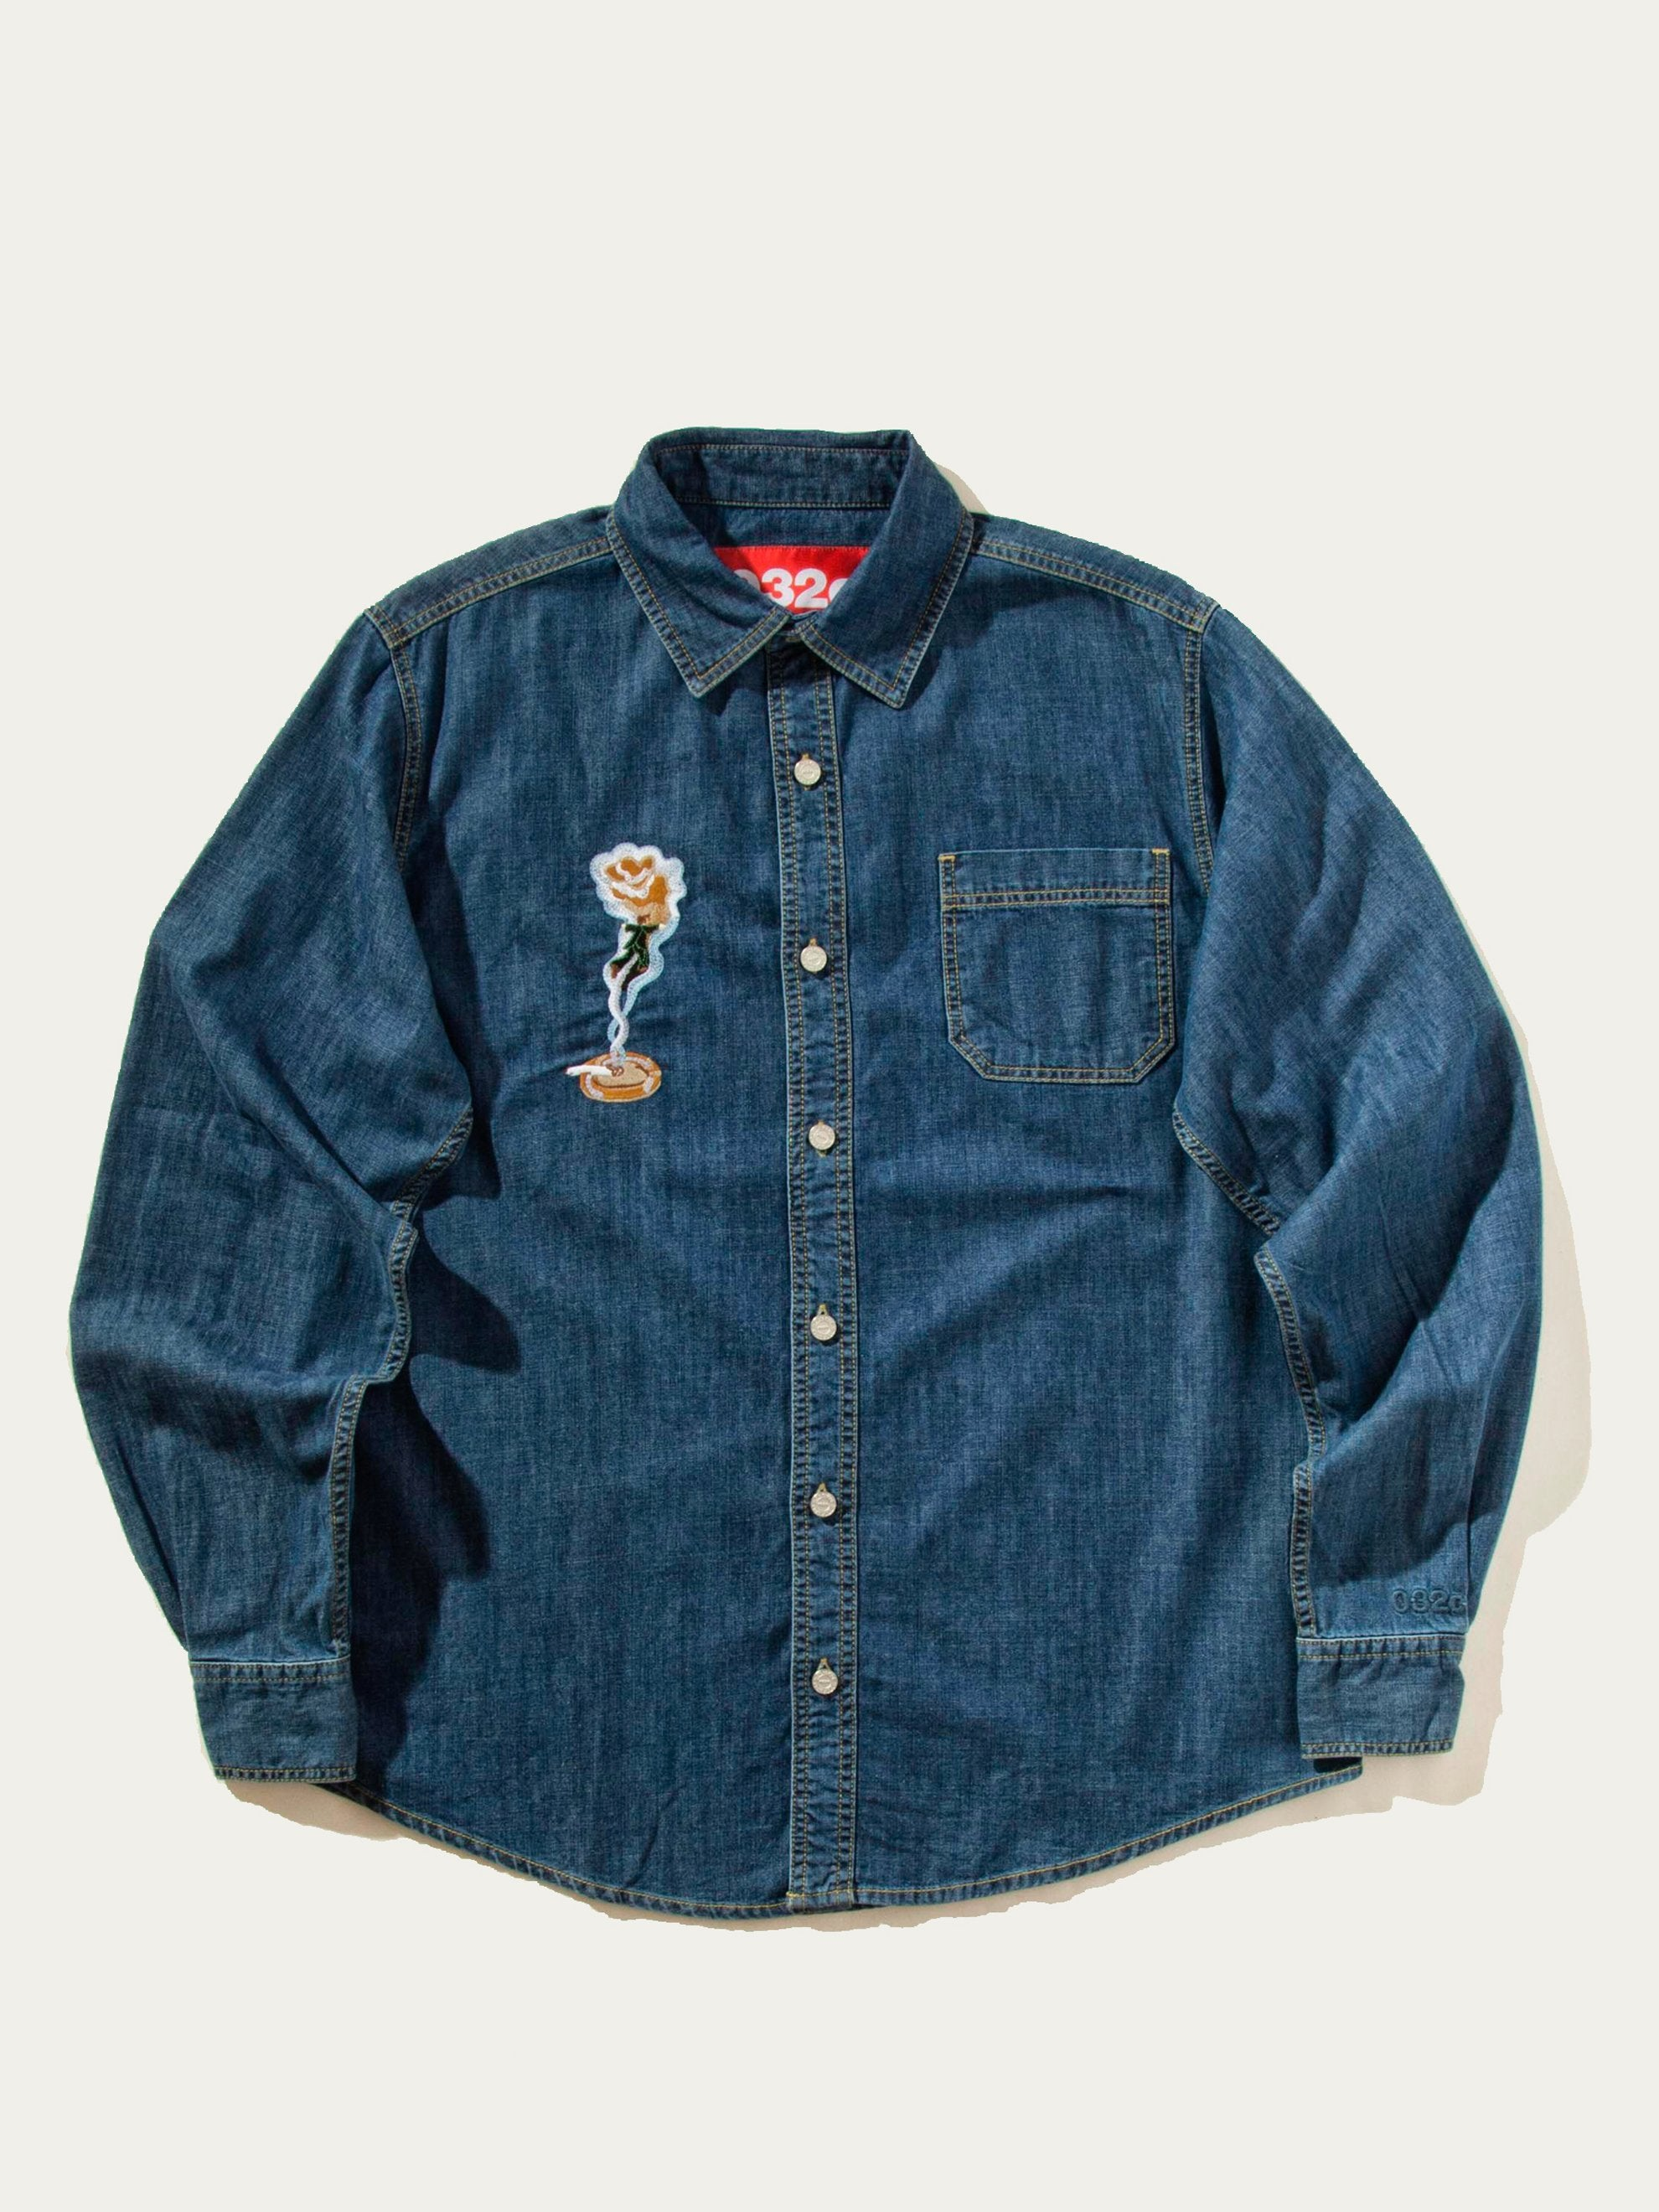 S Smoker's Collection Jean Shirt 1